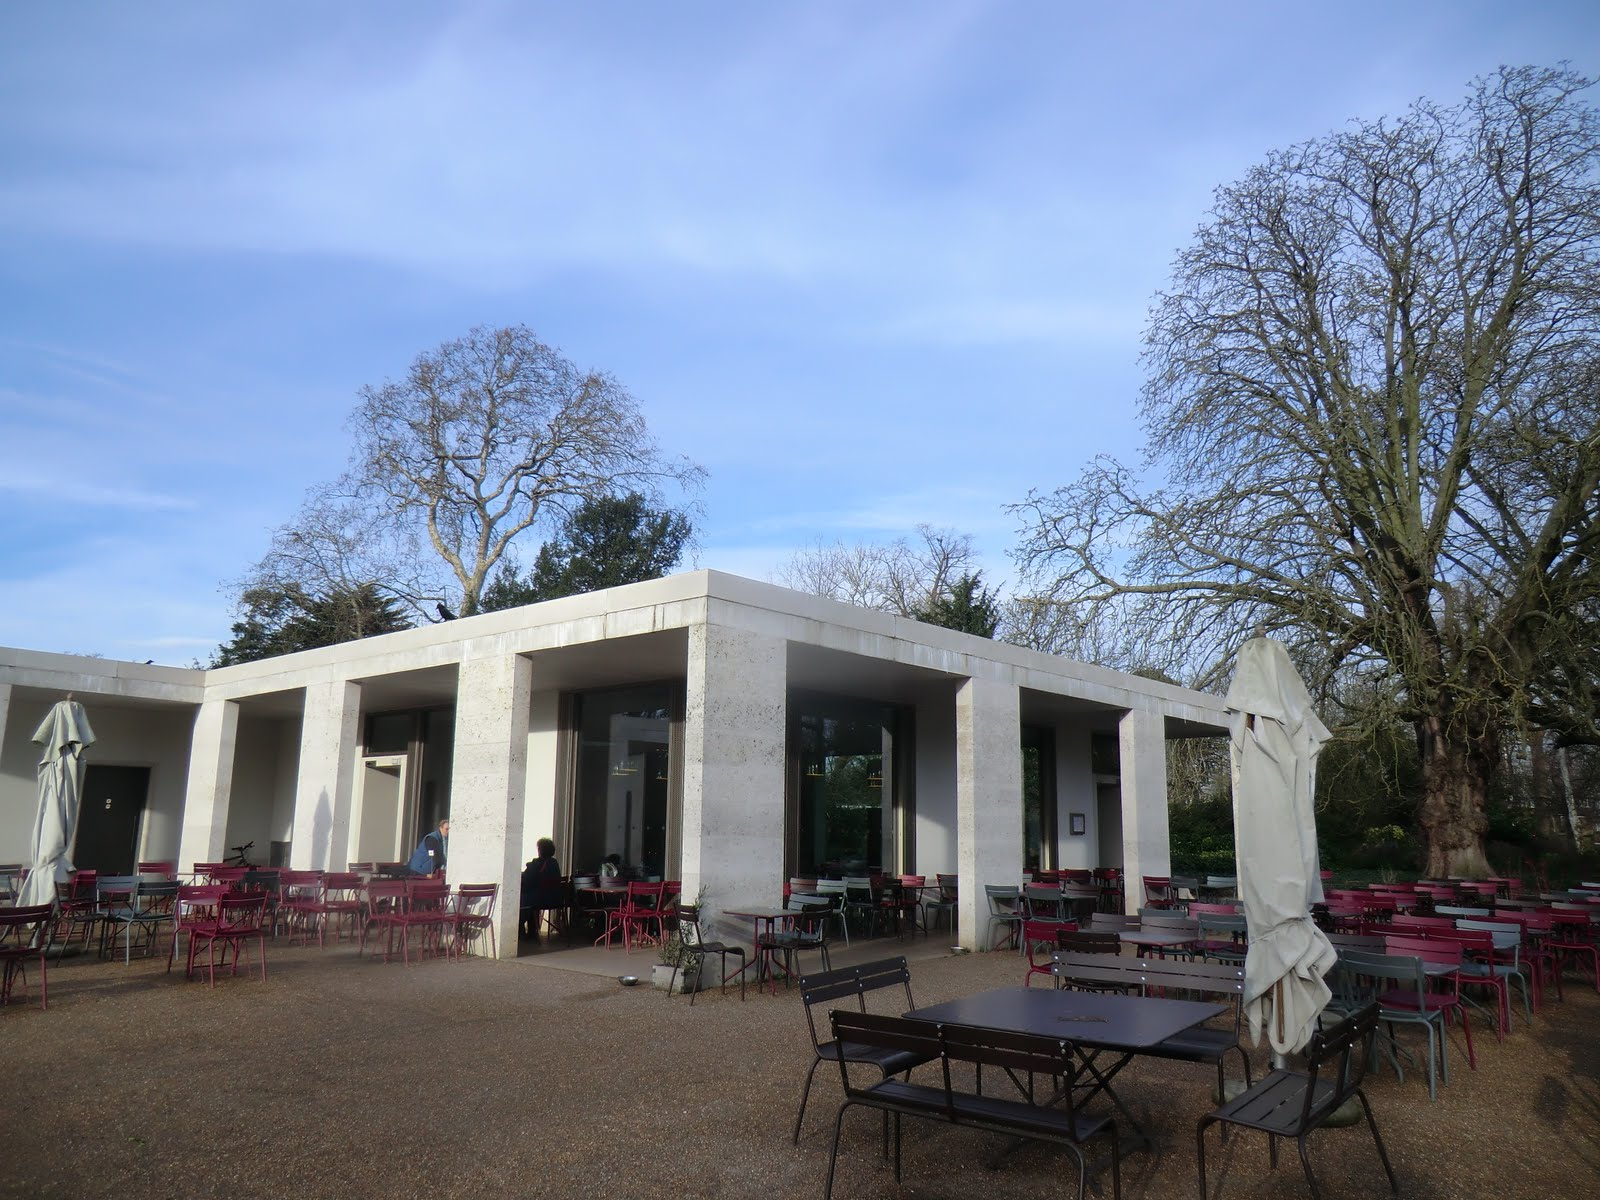 CIMG2135 Chiswick House Caf�